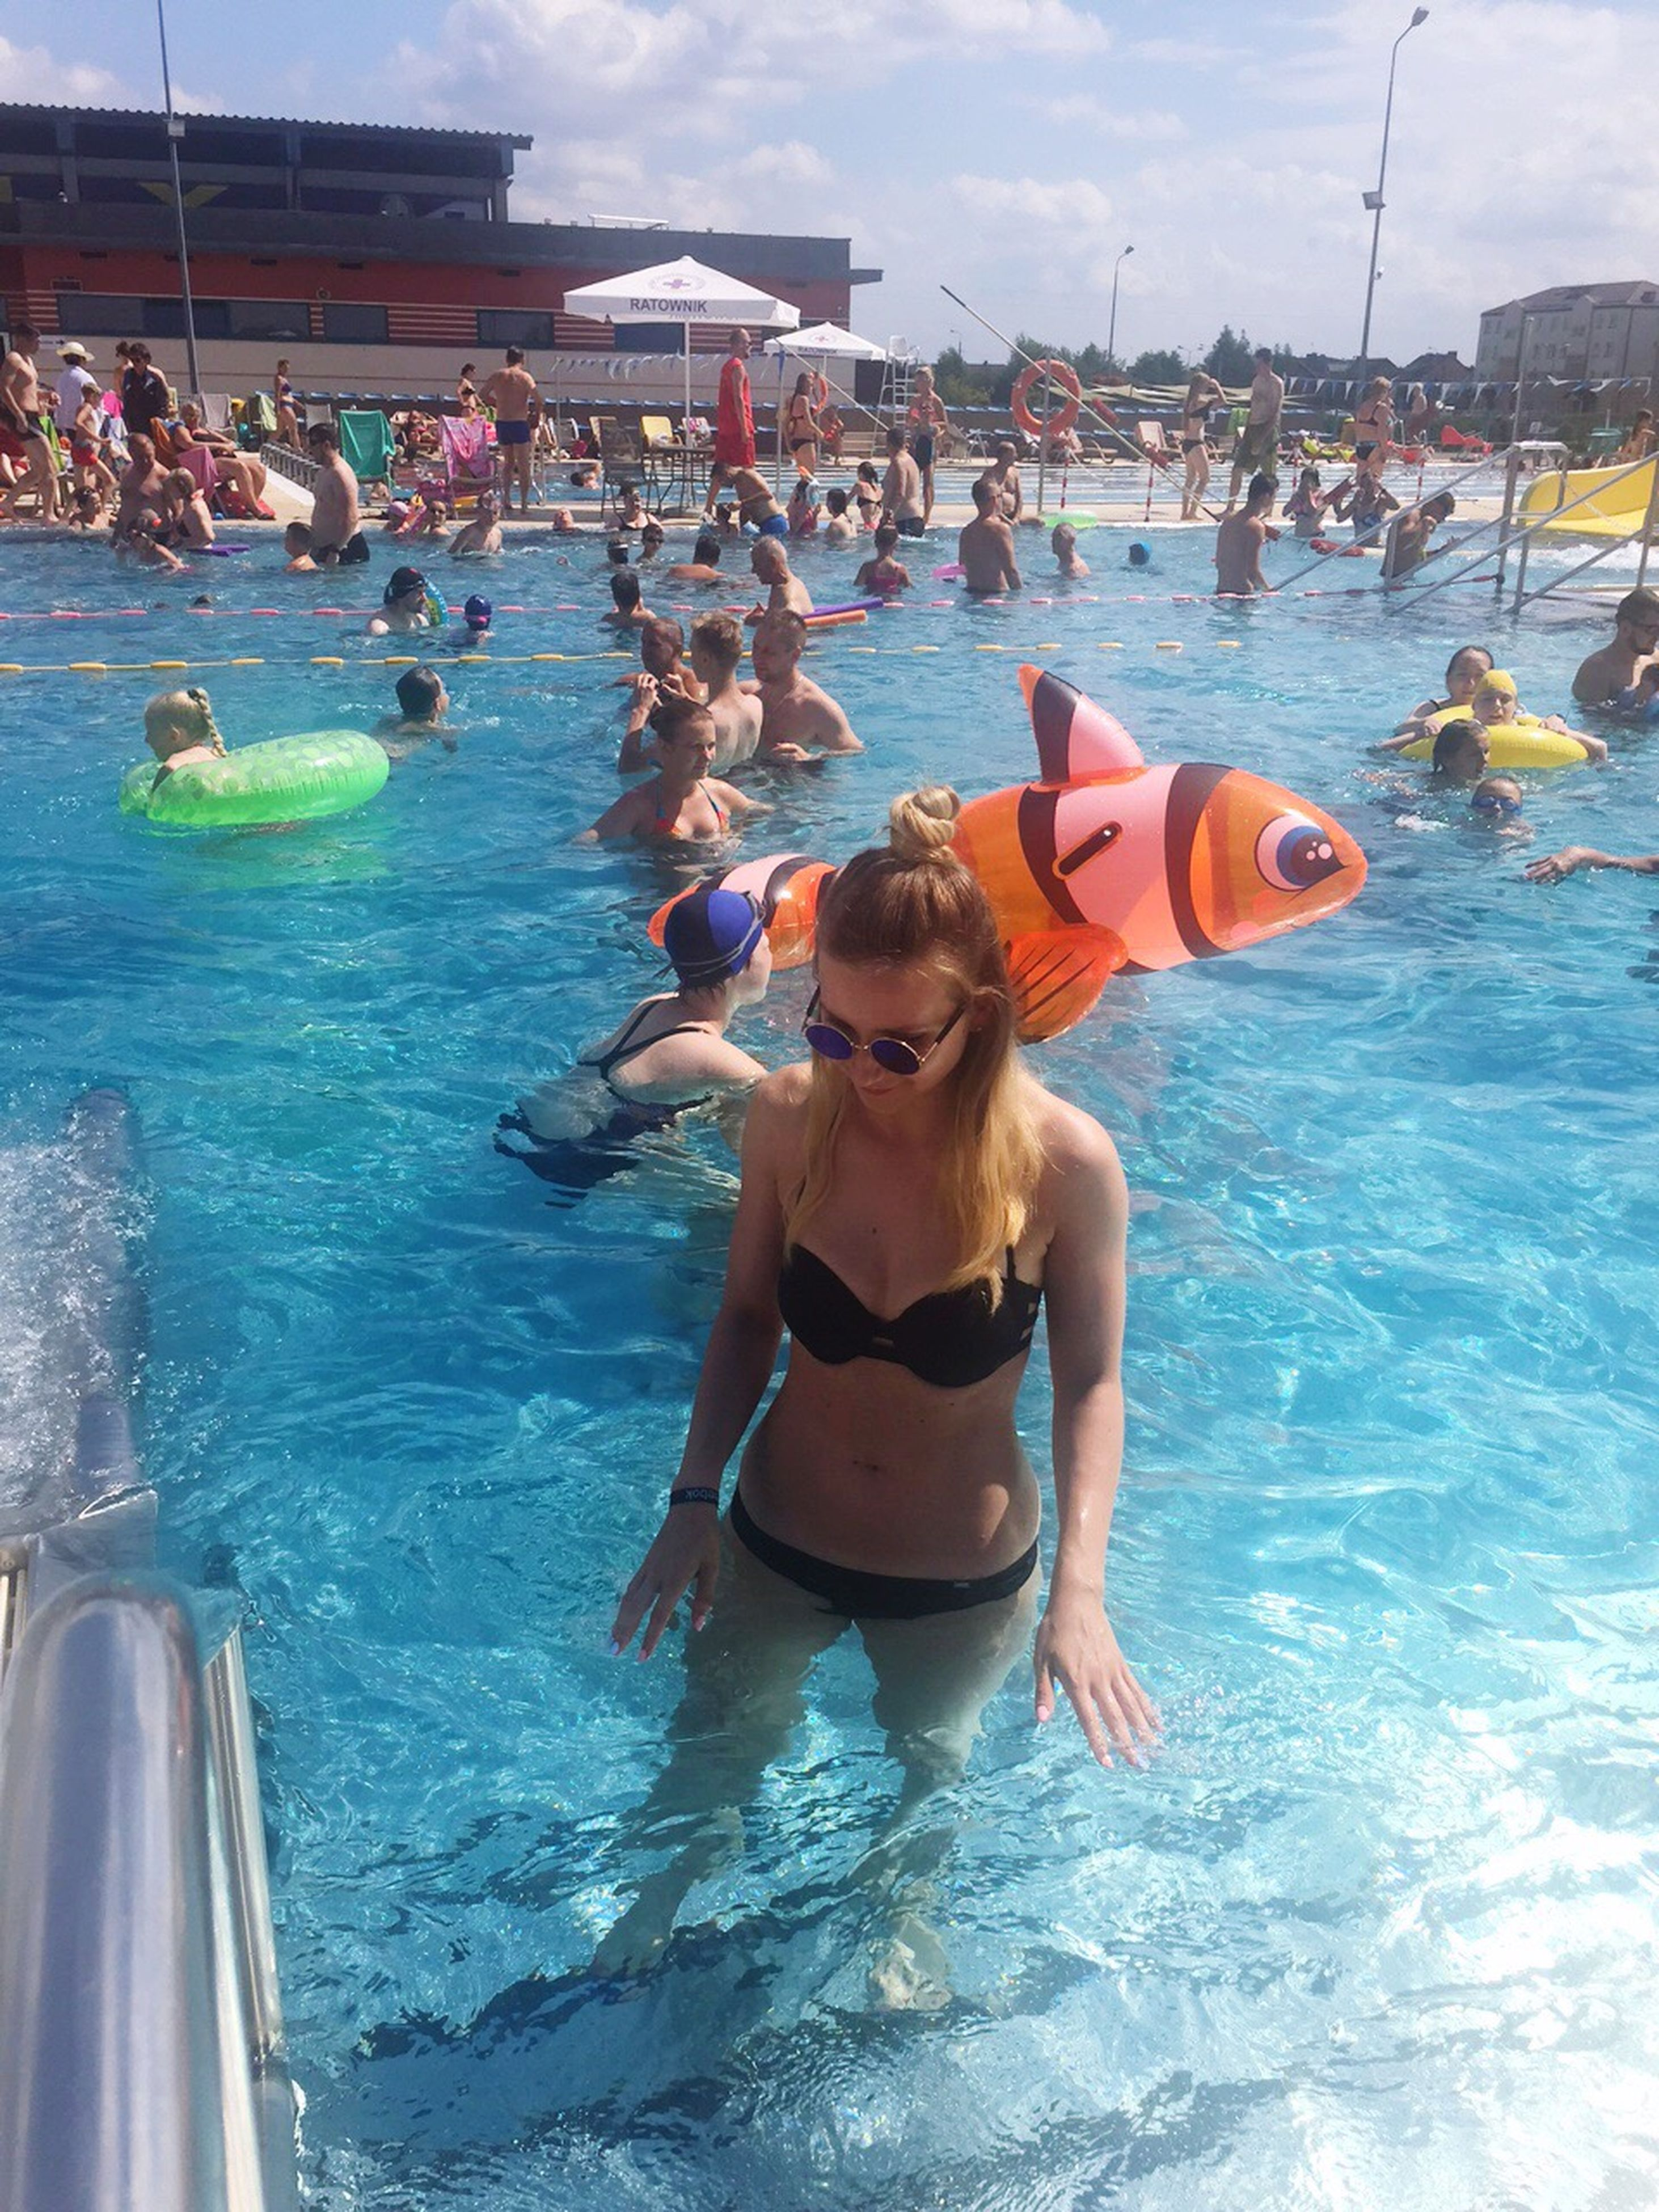 water, swimming pool, real people, leisure activity, enjoyment, lifestyles, fun, day, outdoors, full length, shirtless, large group of people, happiness, vacations, men, swimming, smiling, young adult, people